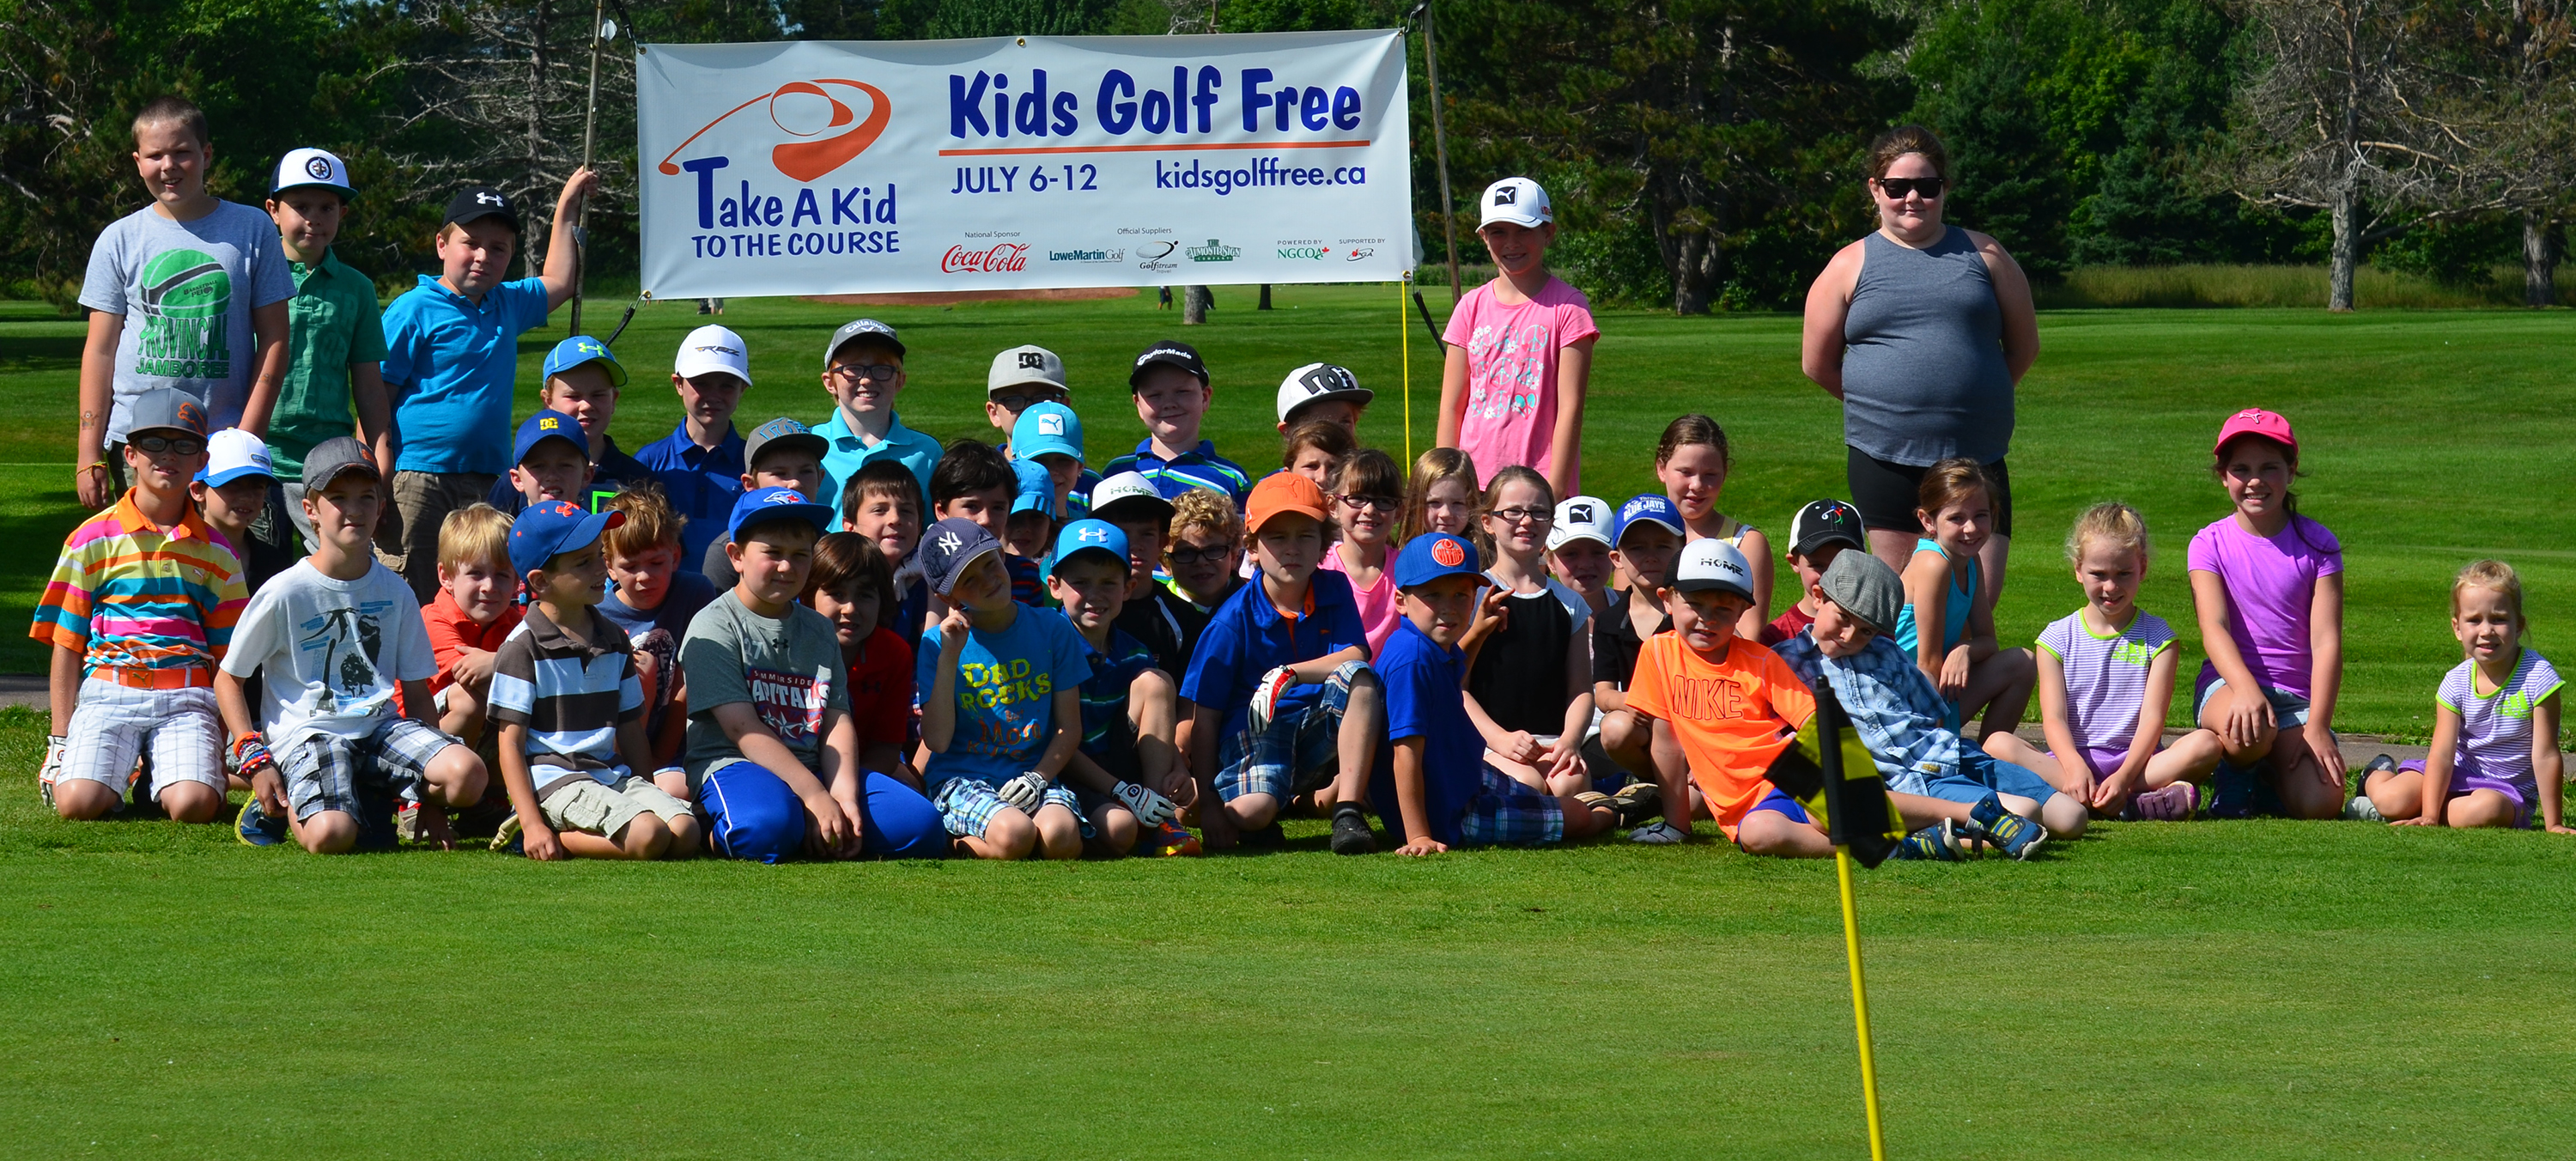 Leveling Playing Field For Our Kids >> Share Golf With The Take A Kid To The Course Program Golf Canada